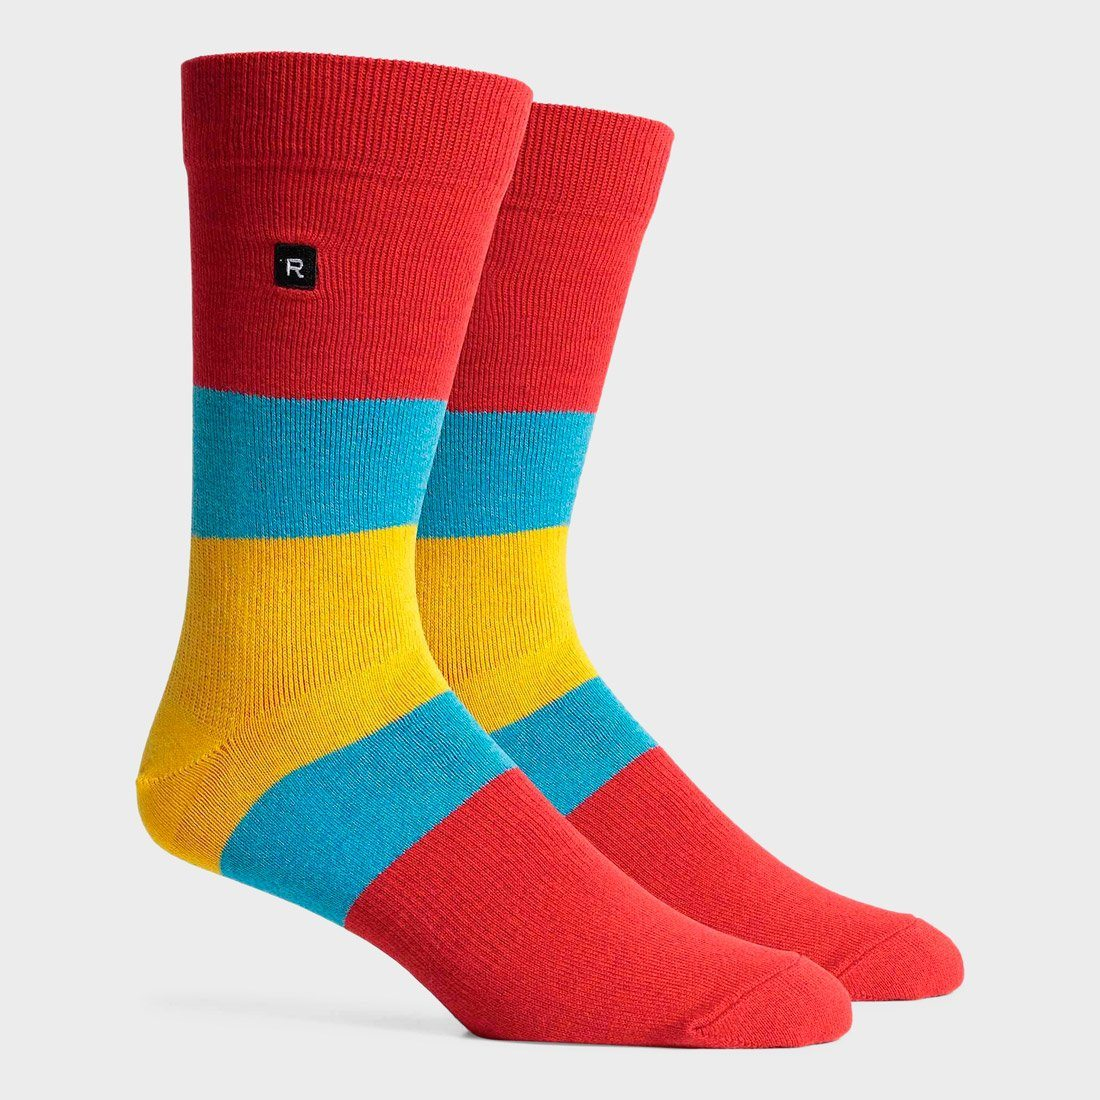 Richer Poorer Chief Crew Sock Red/ Yellow